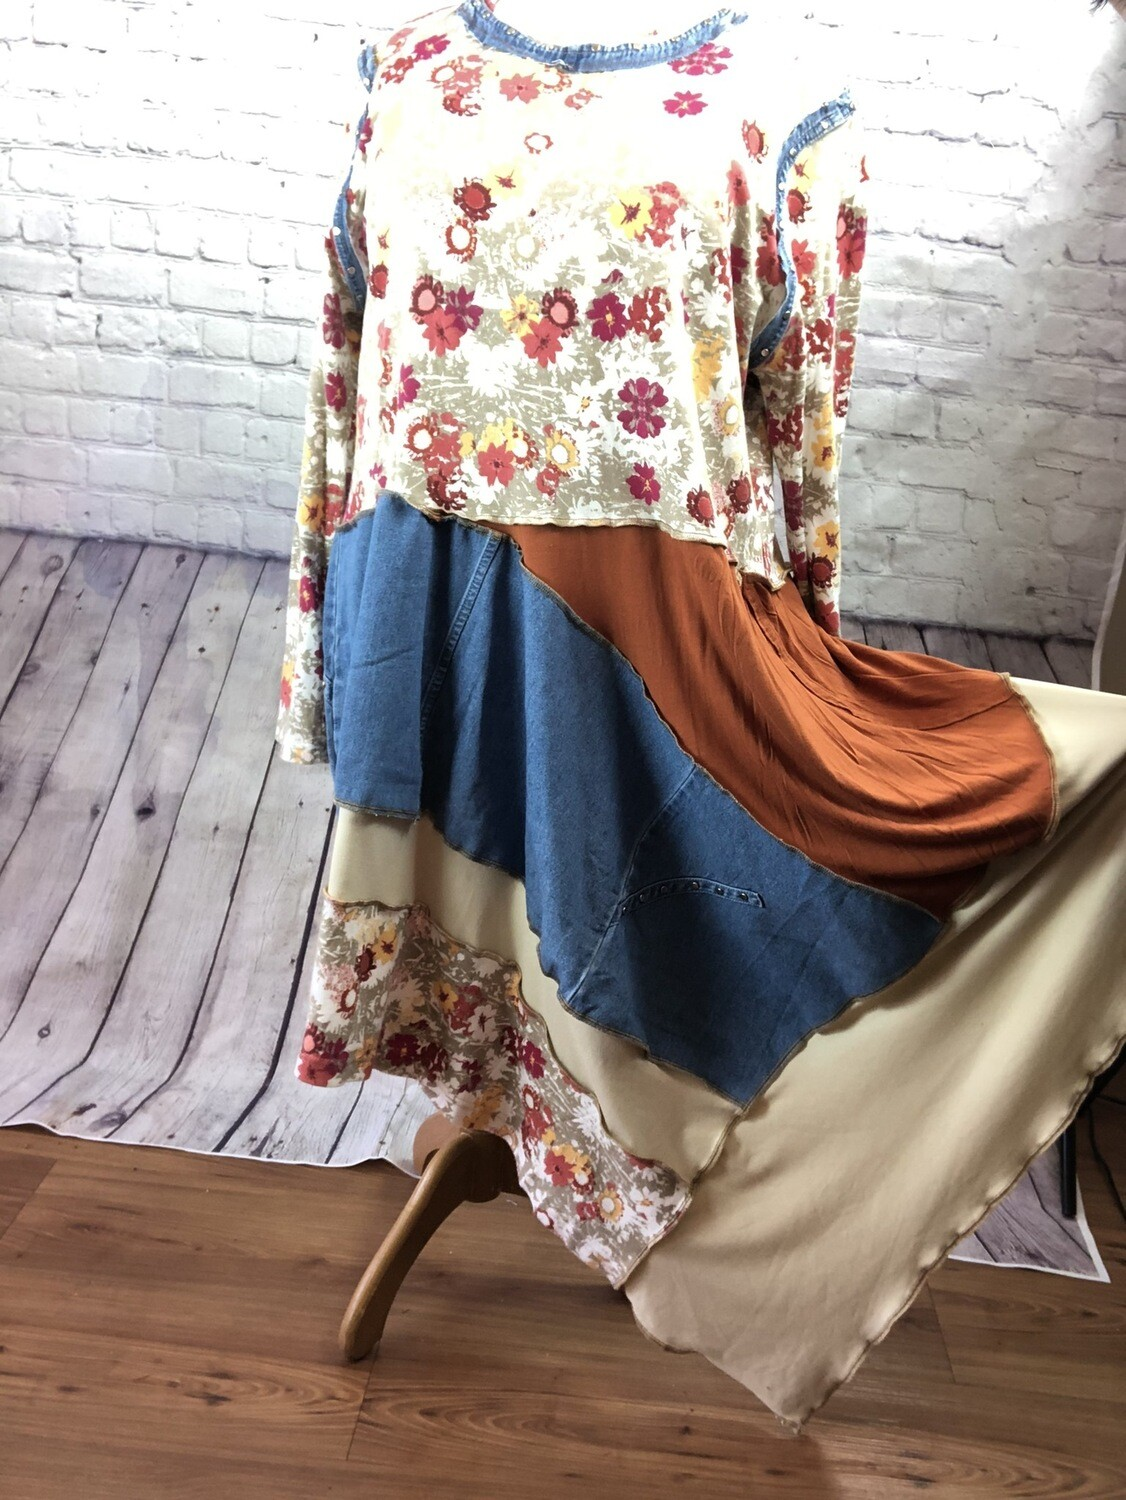 S Threads Boutique Recycled Tunic OOAK Jean Knit Layered Patchwork Overlock Upcycled Sustainable Fashion Dress size 4X